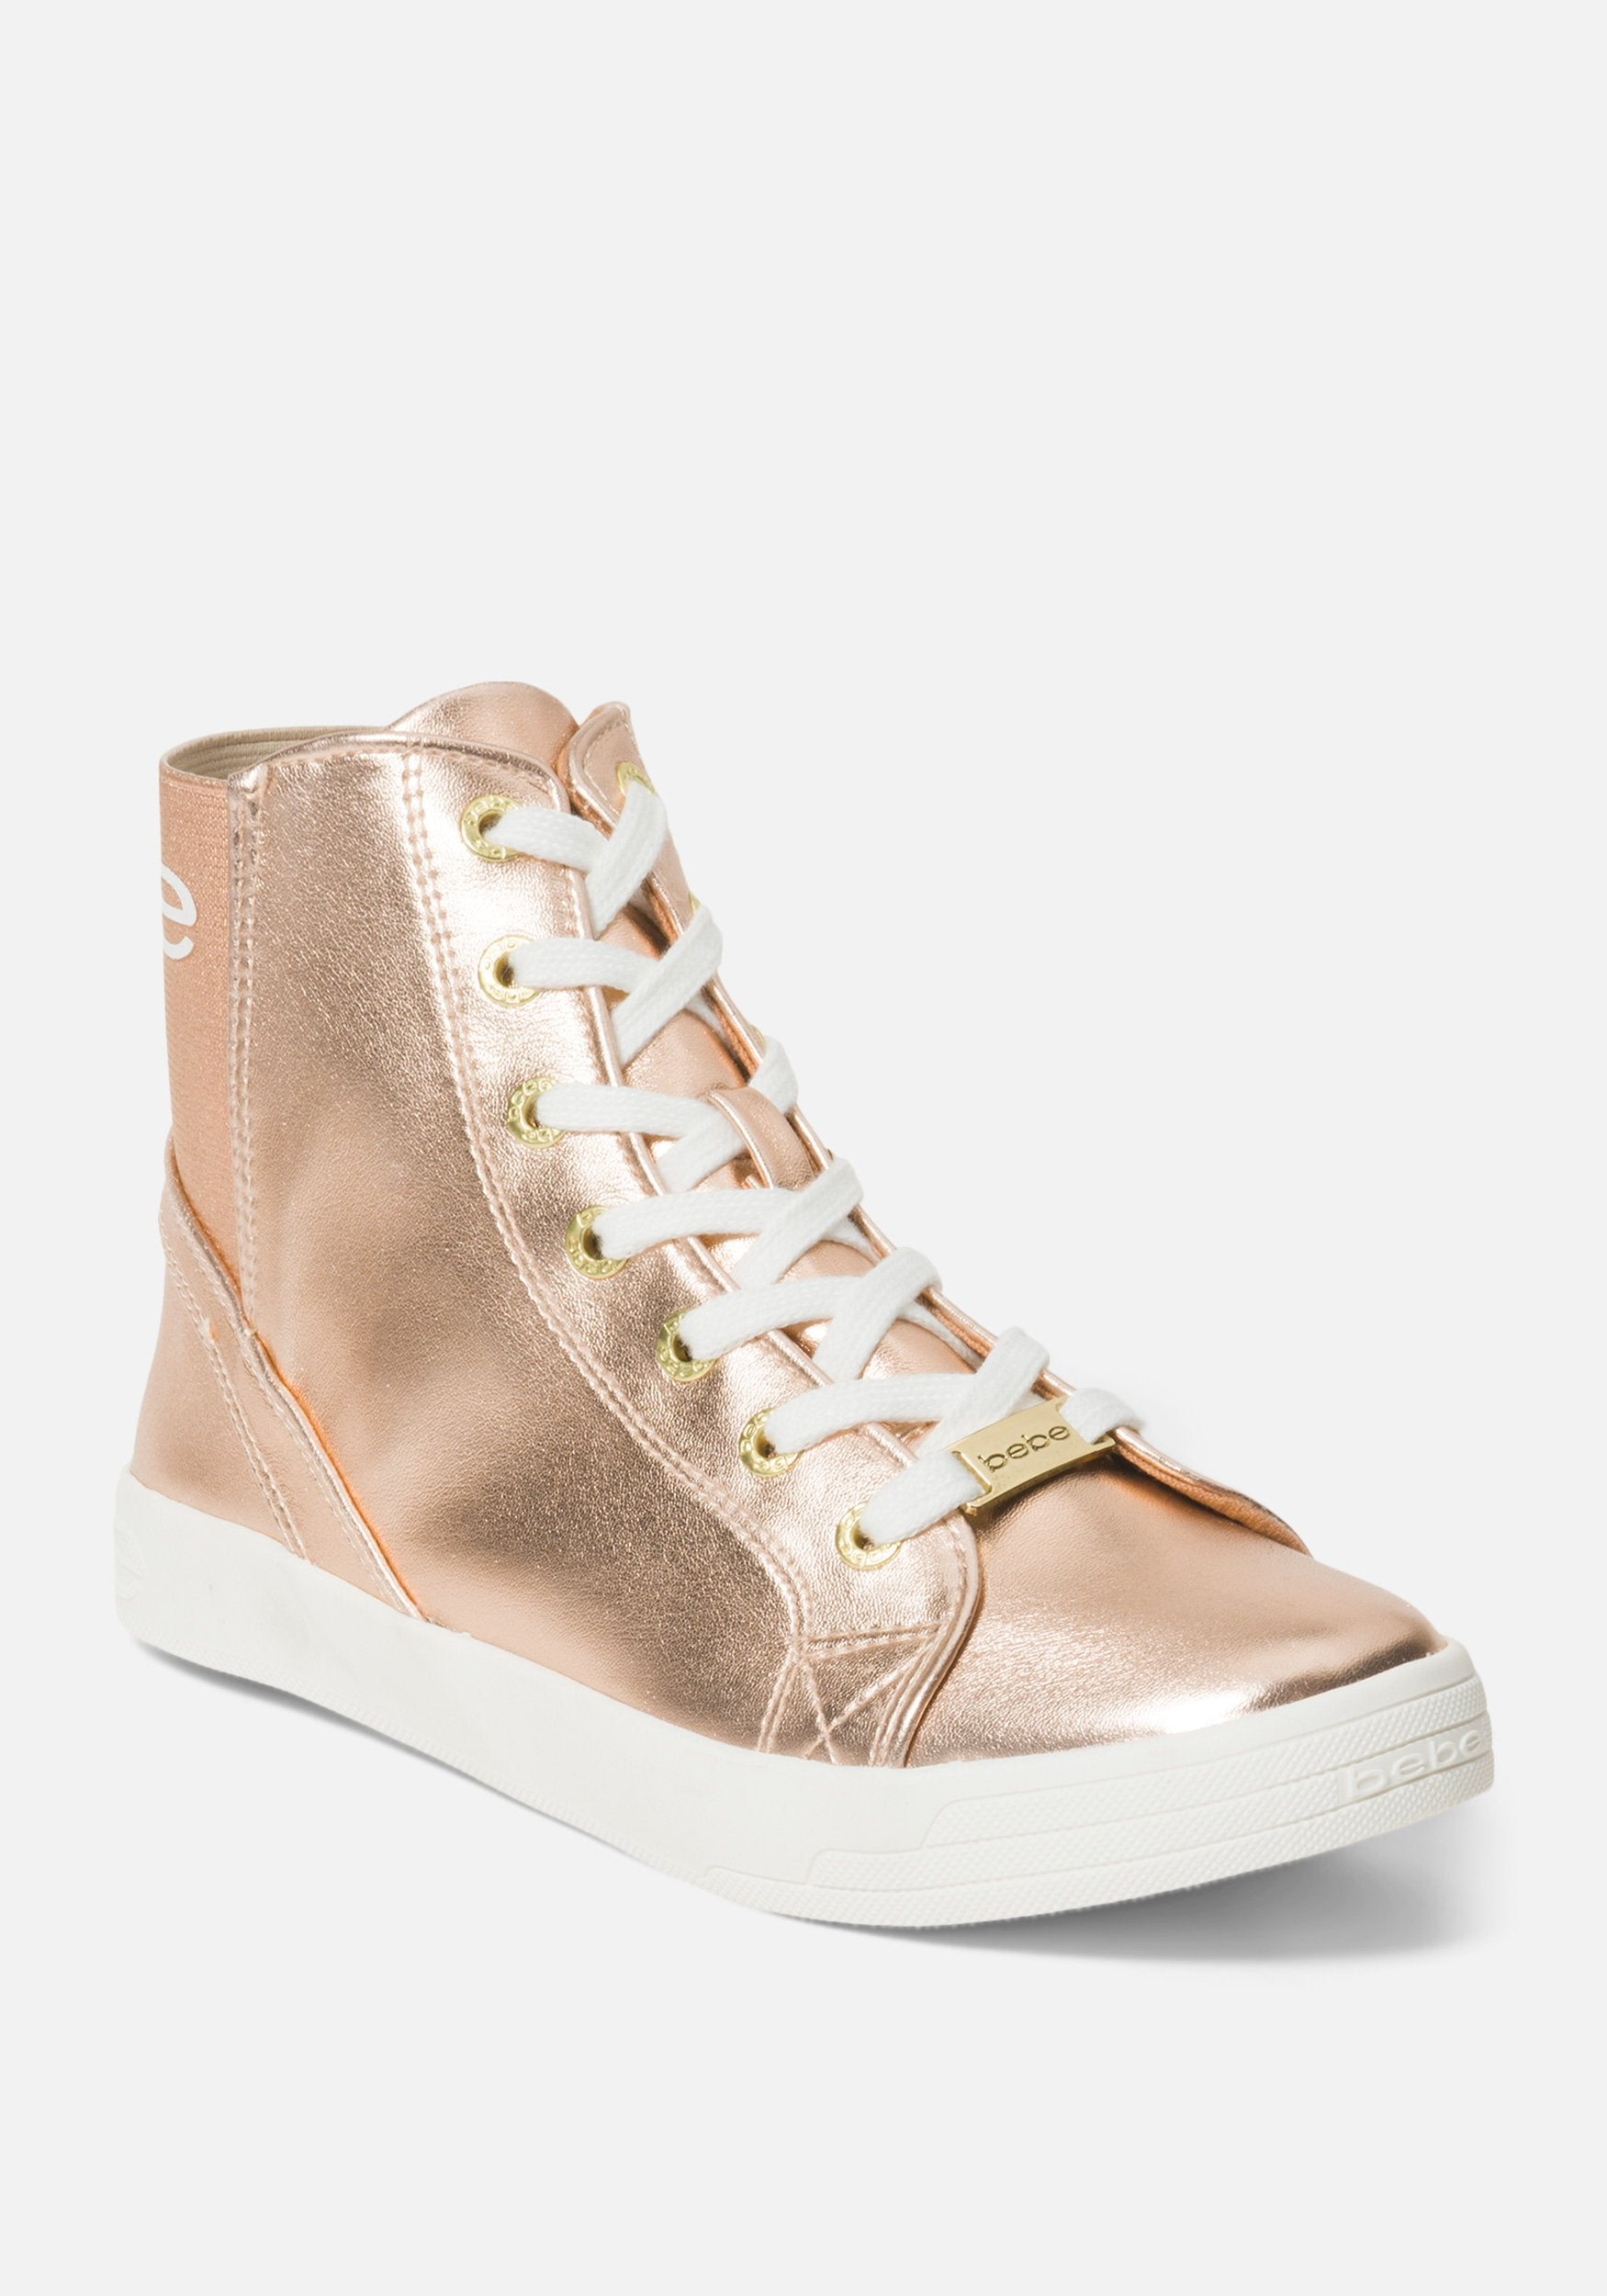 Image of Bebe Women's Dempsey Shoe, Size 8 in ROSE GOLD METALLIC Synthetic